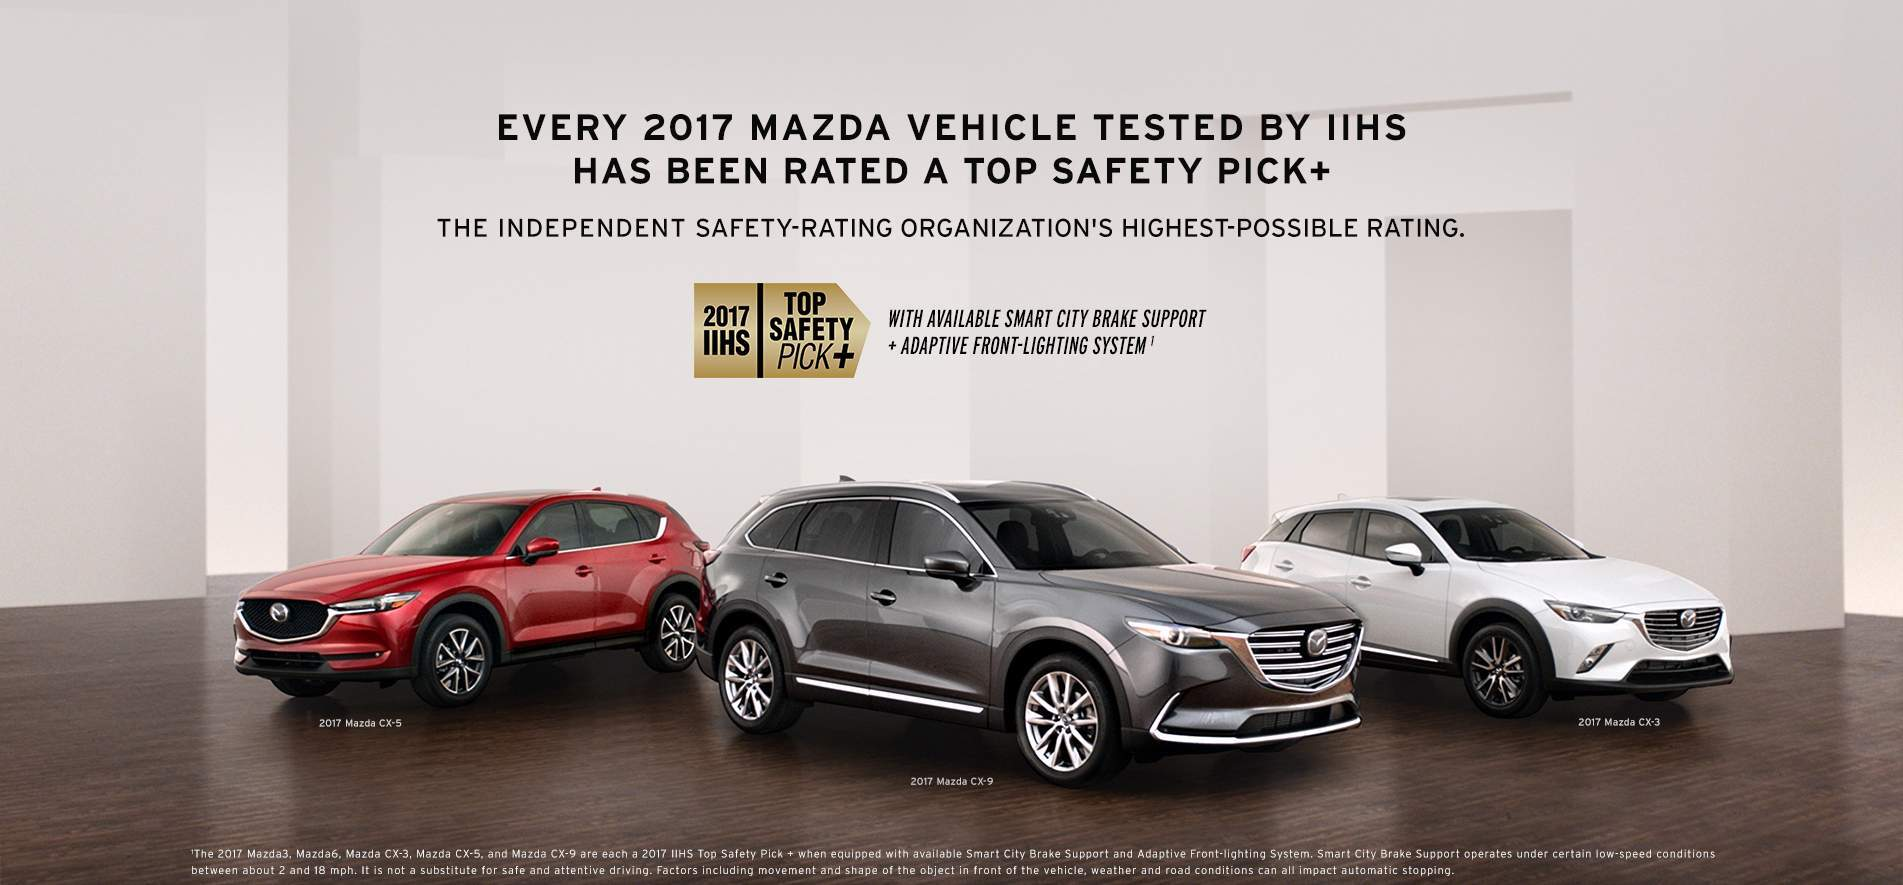 All 2017 Mazda Models received IIHS Top Safety Pick +